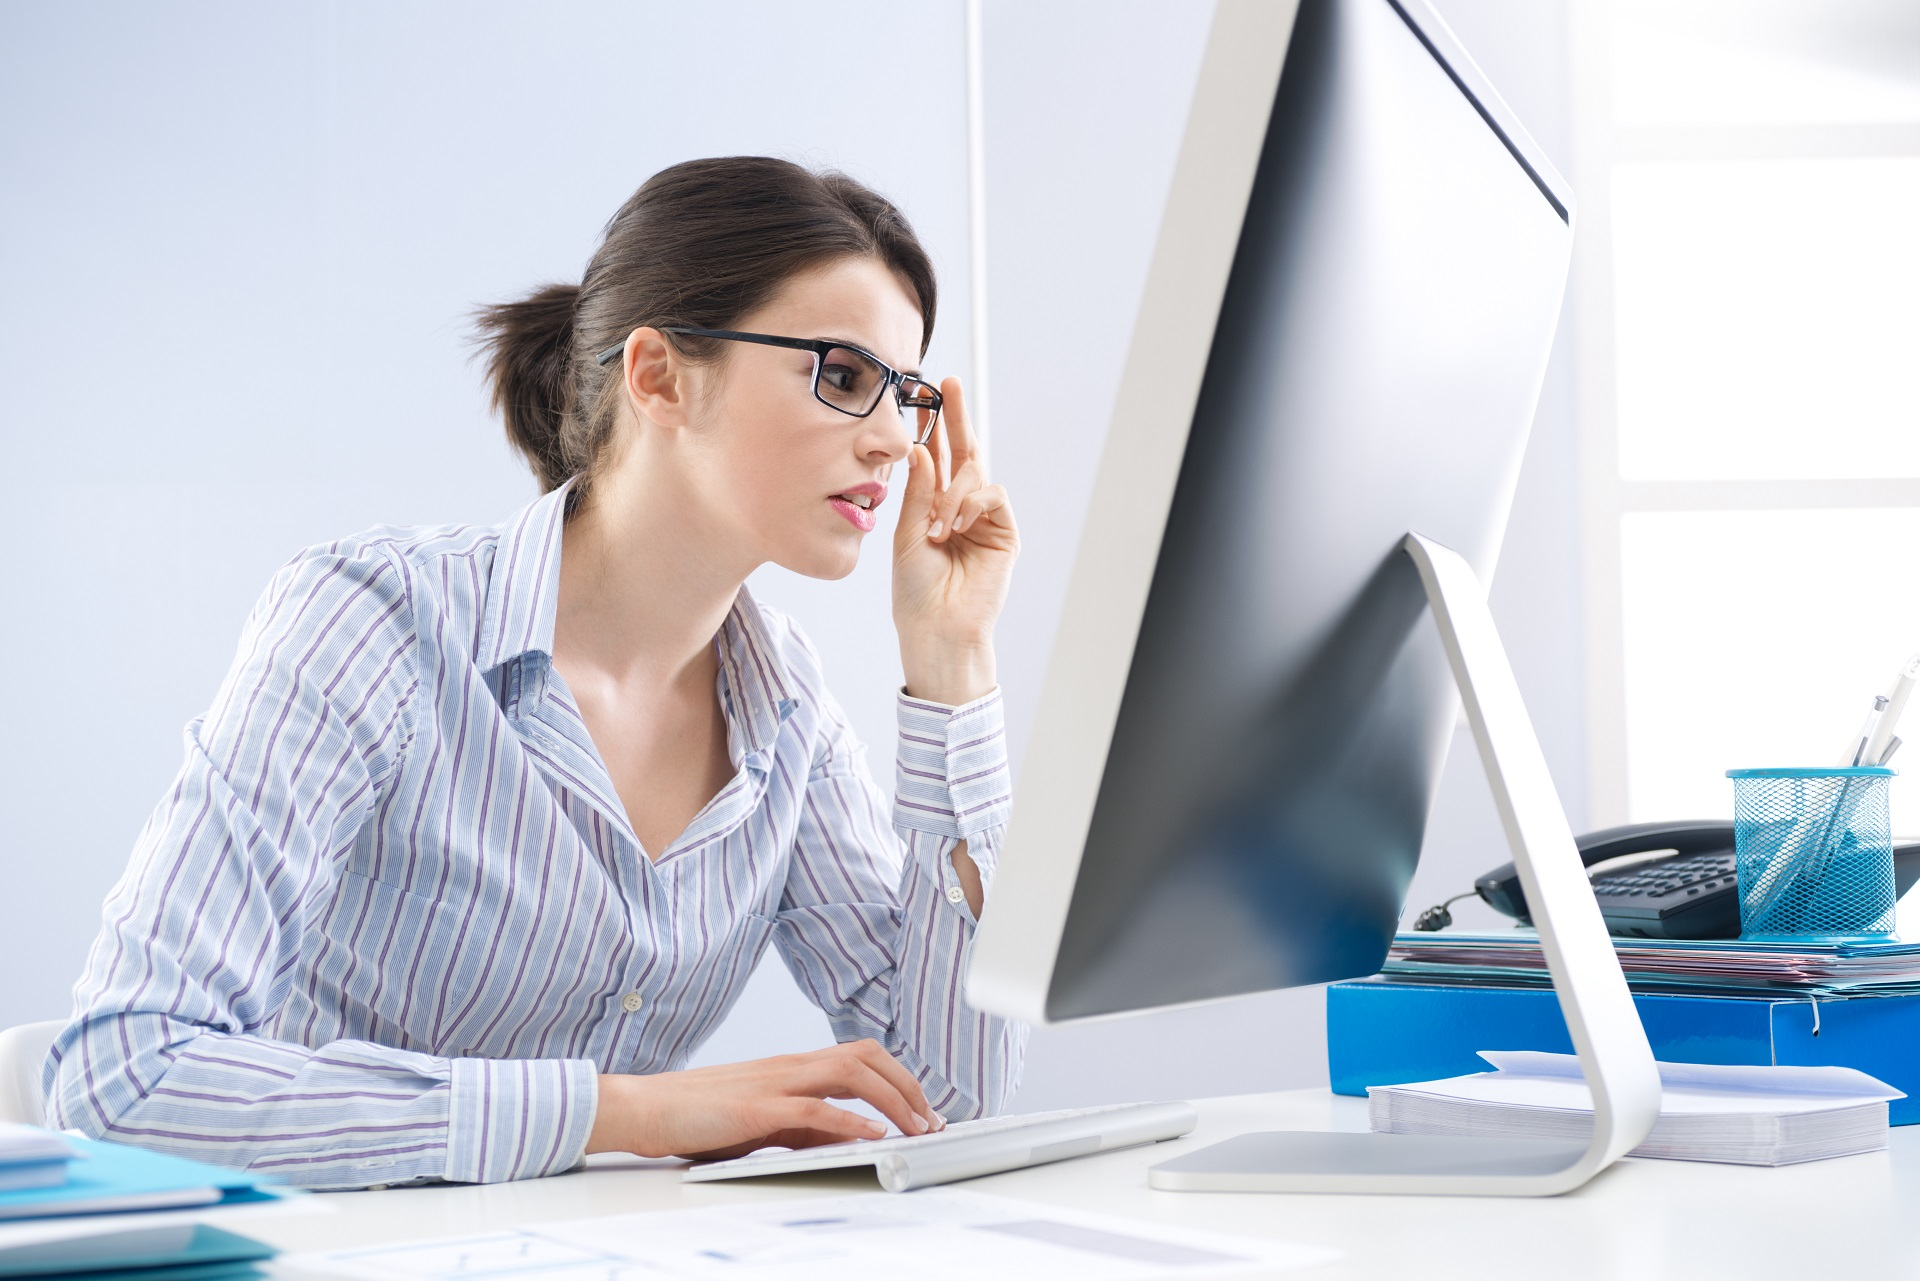 Computer Vision Syndrome | Tumwater Eye Center